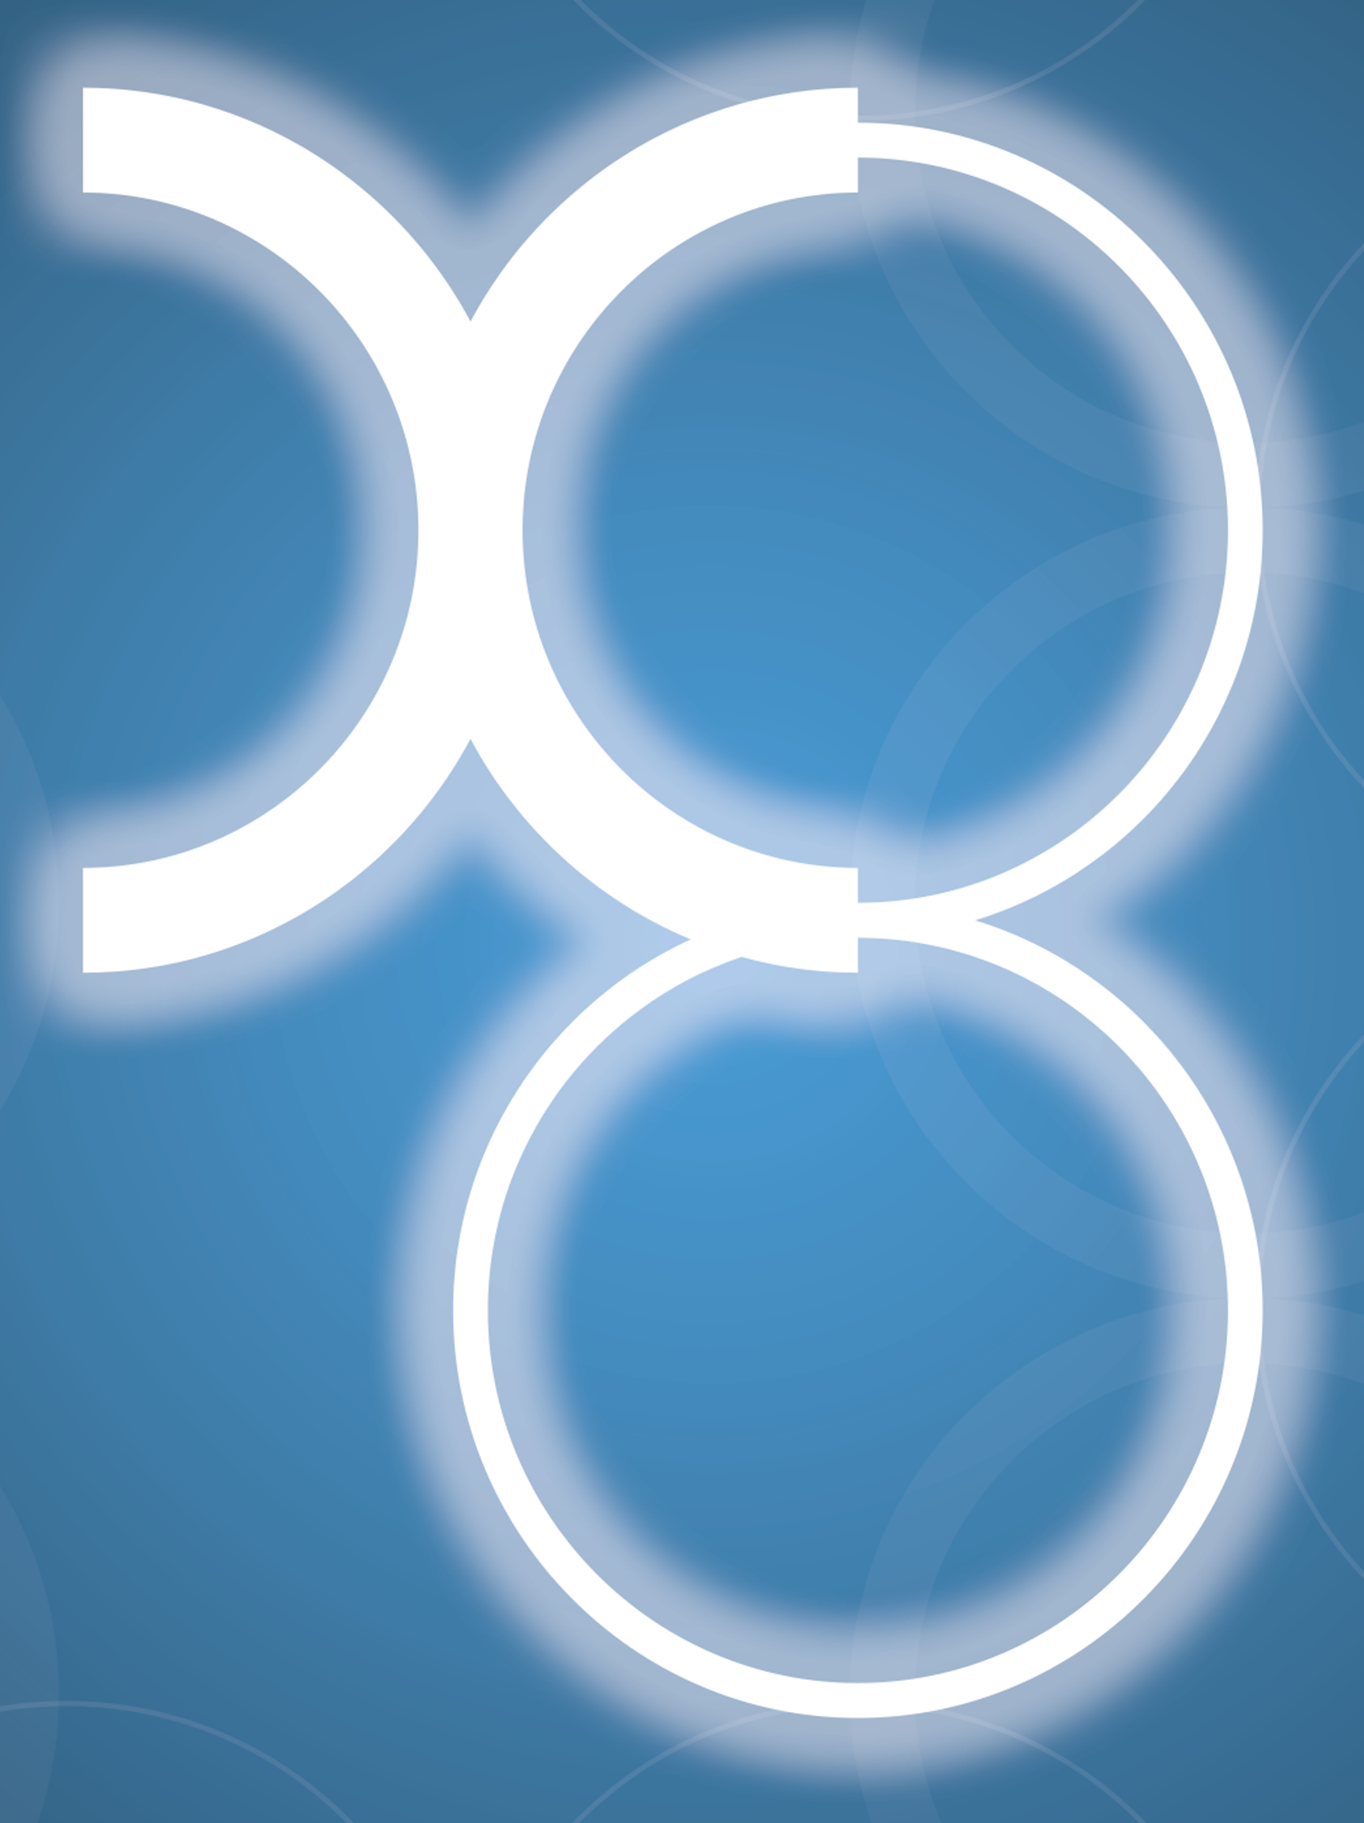 EndNote X8 Logo with Background Pattern